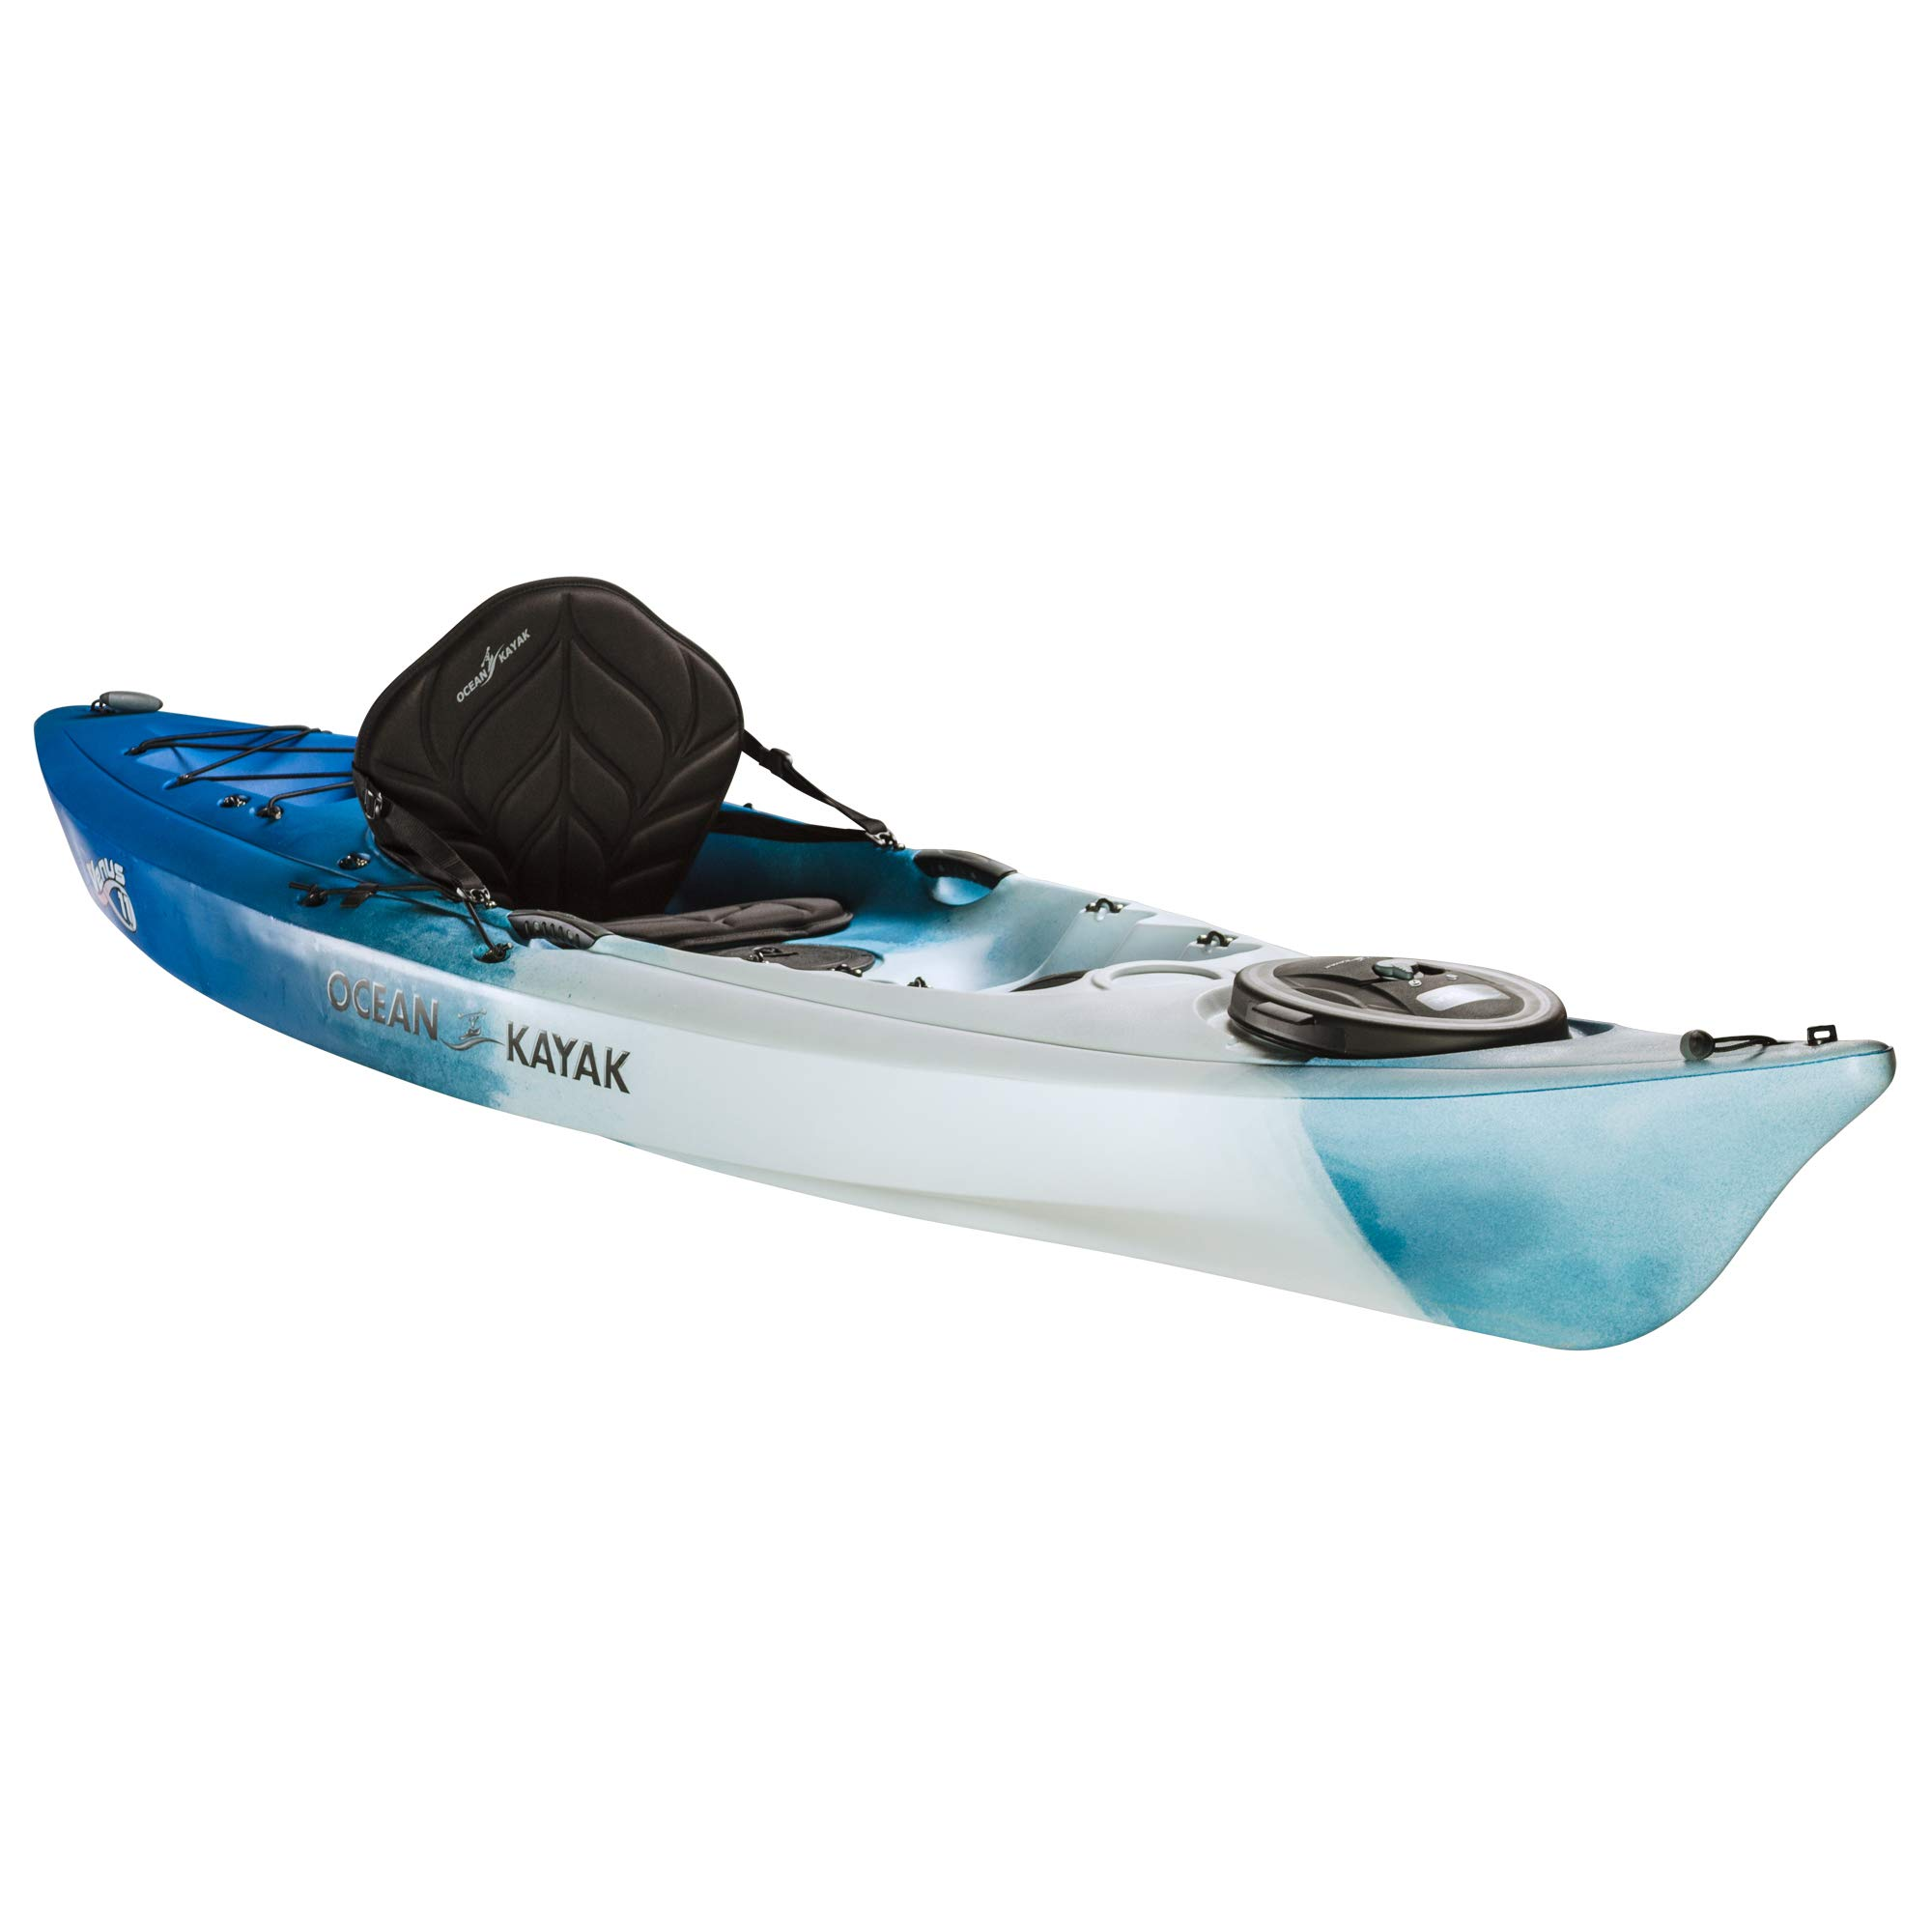 Ocean Kayak Venus 11 One-Person Women's Sit-On-Top Kayak, Surf, 10 Feet 8 Inches